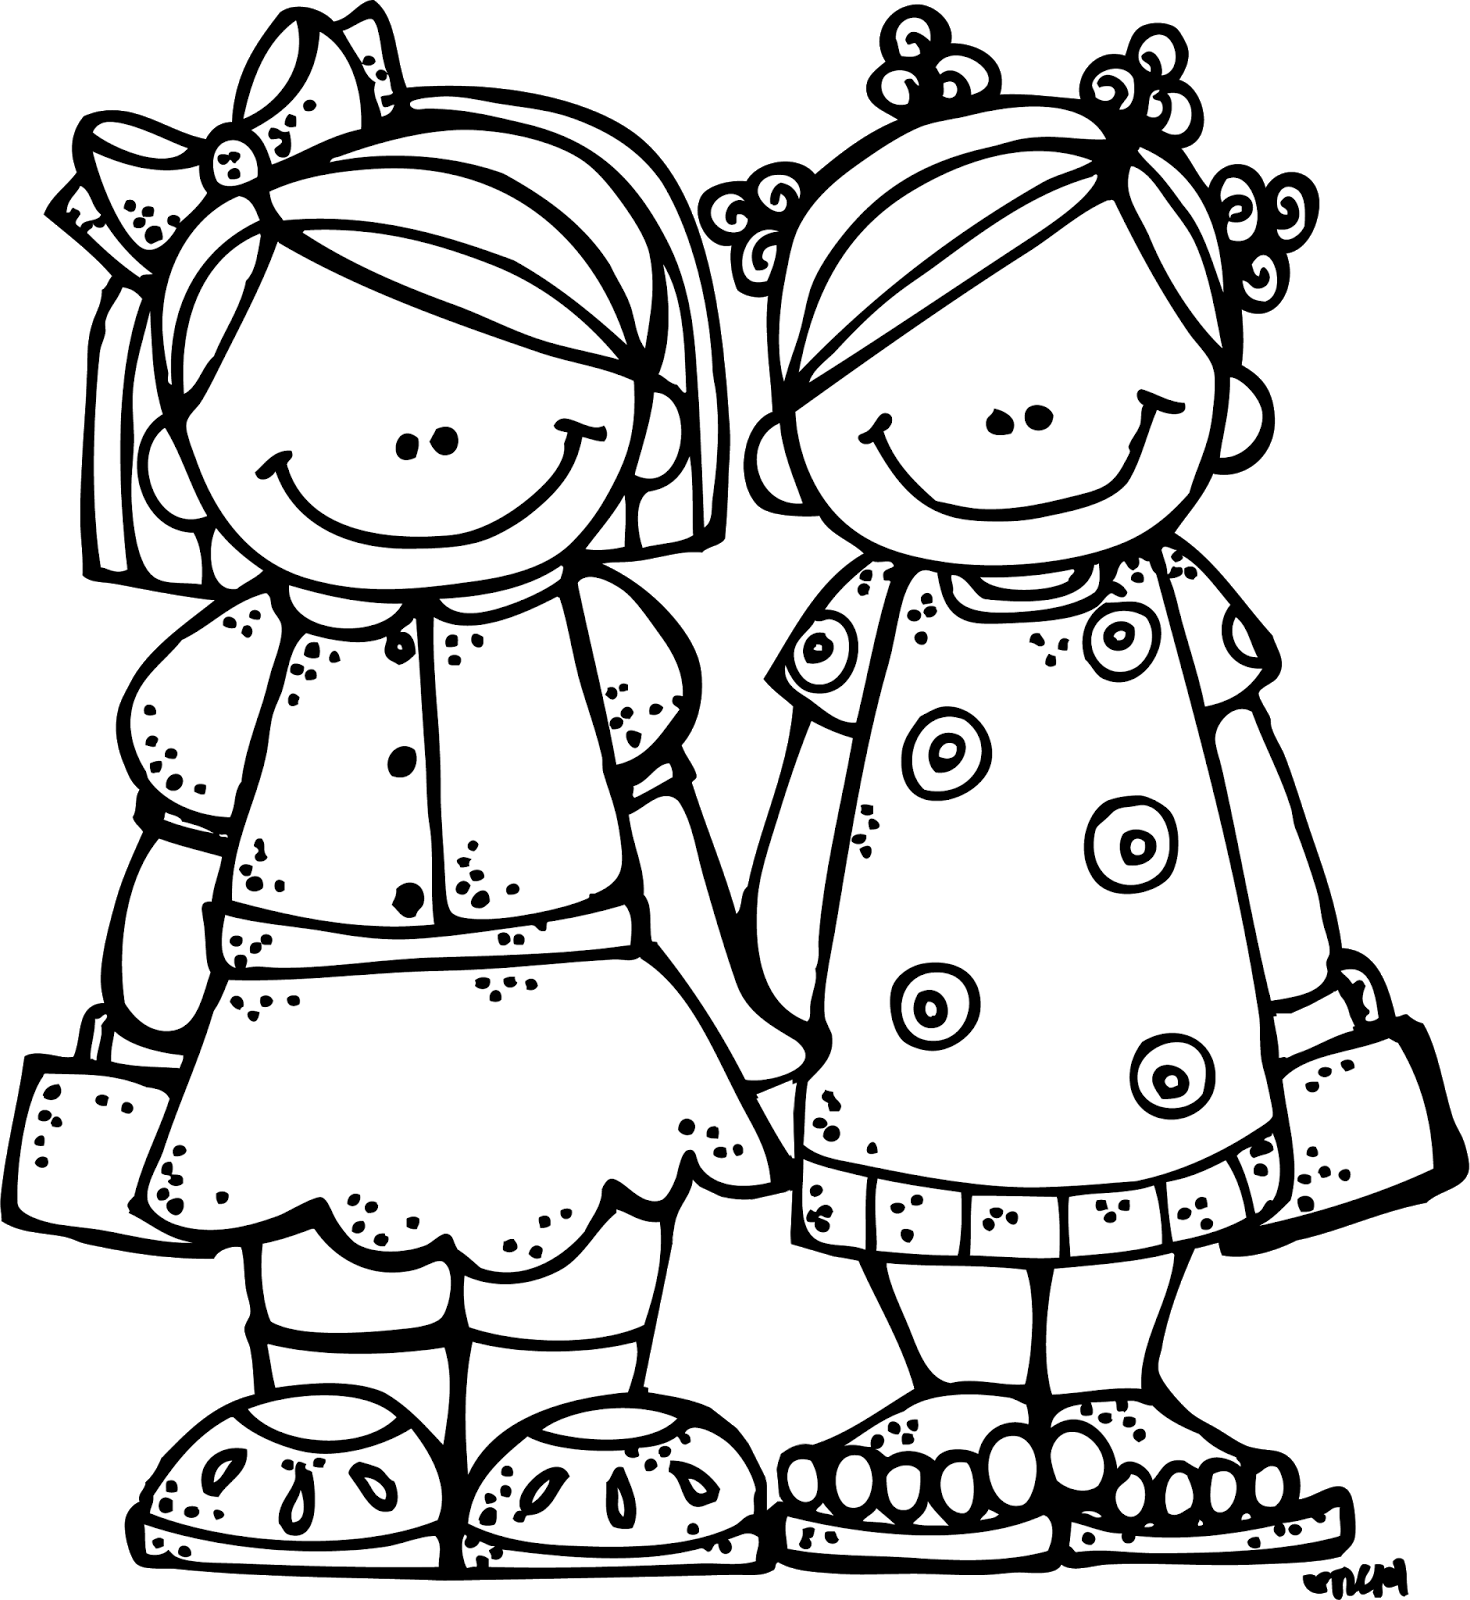 jpg download Melonheadz illustrating more conference. Lds family clipart black and white